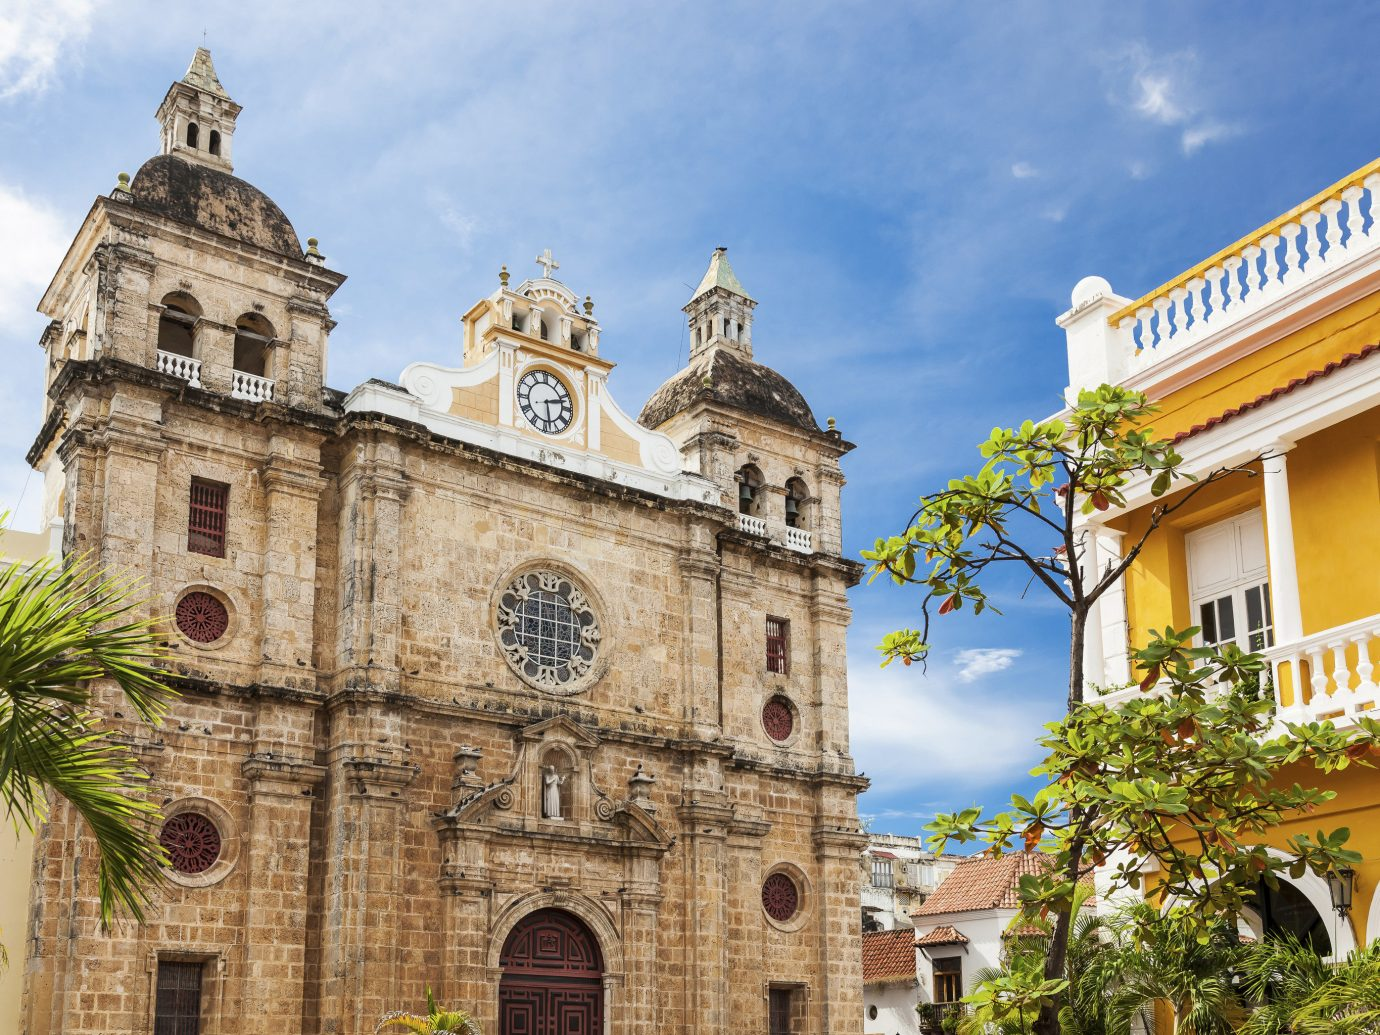 Travel Tips Trip Ideas building outdoor historic site Town landmark place of worship yellow tourism facade Church cathedral estate synagogue monastery basilica tall old stone tan